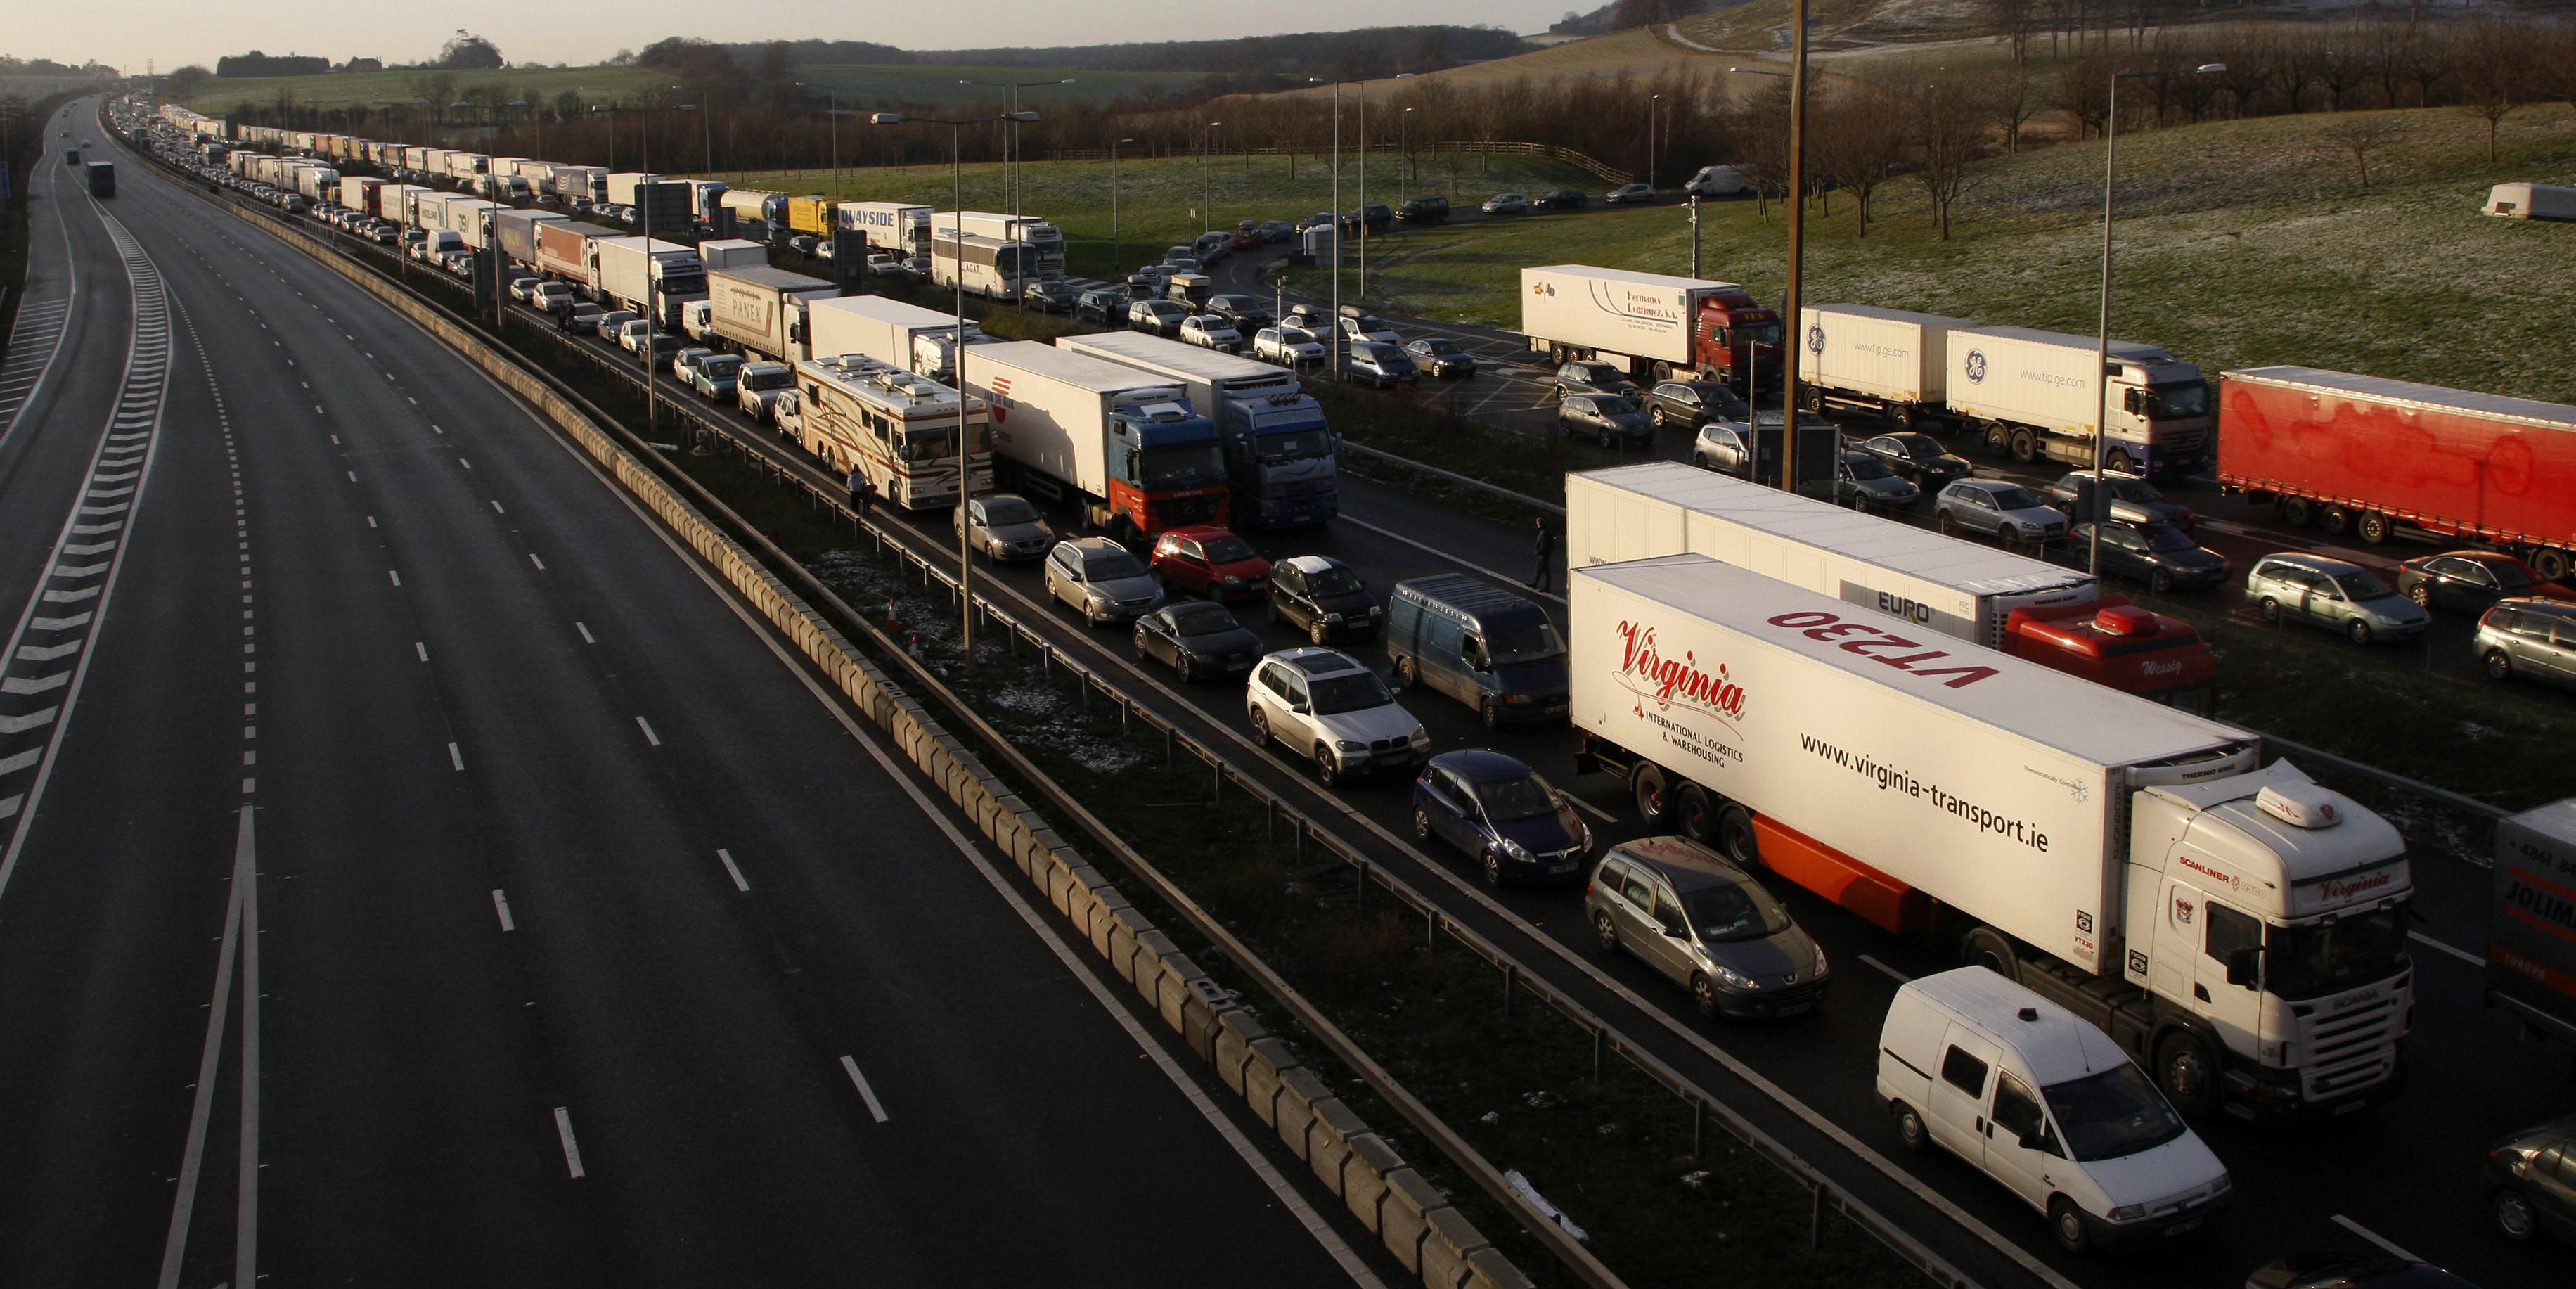 Fret, pollution, embouteillages... les dégâts du transport routier diésel en Europe